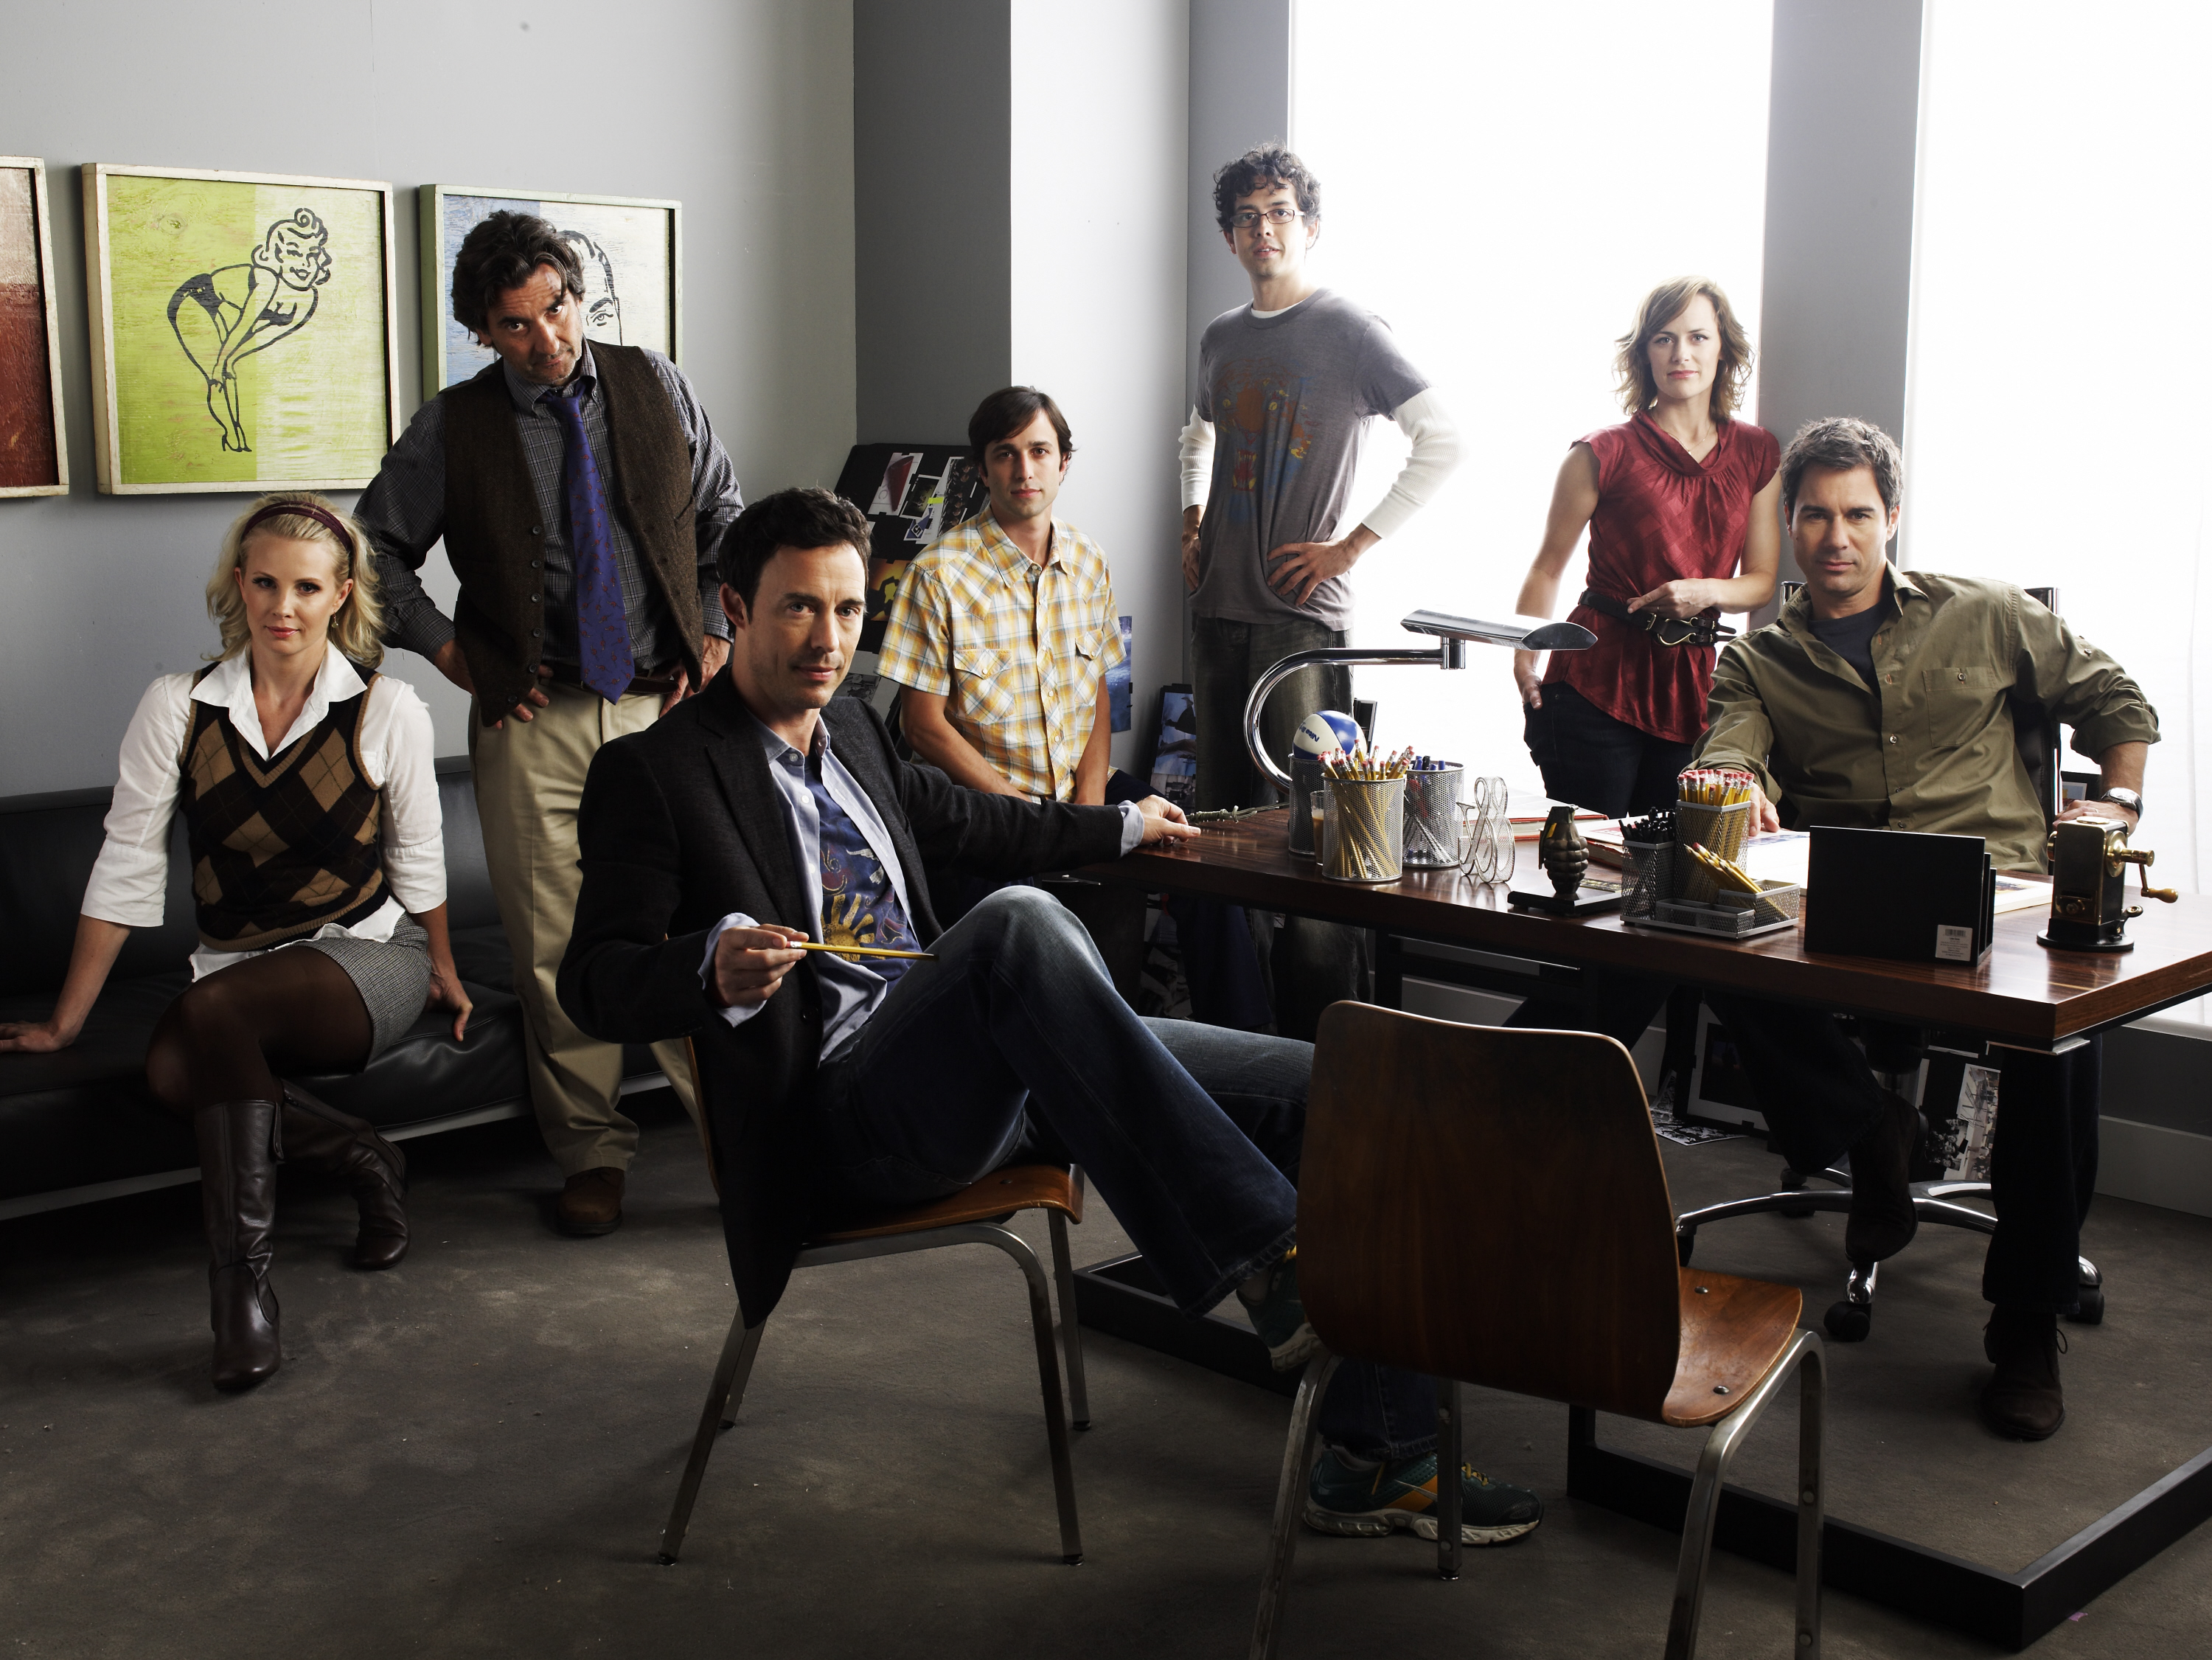 Griffin Dunne, Eric McCormack, Monica Potter, Geoffrey Arend, Tom Cavanagh, Mike Damus, and Sarah Clarke in Trust Me (2009)